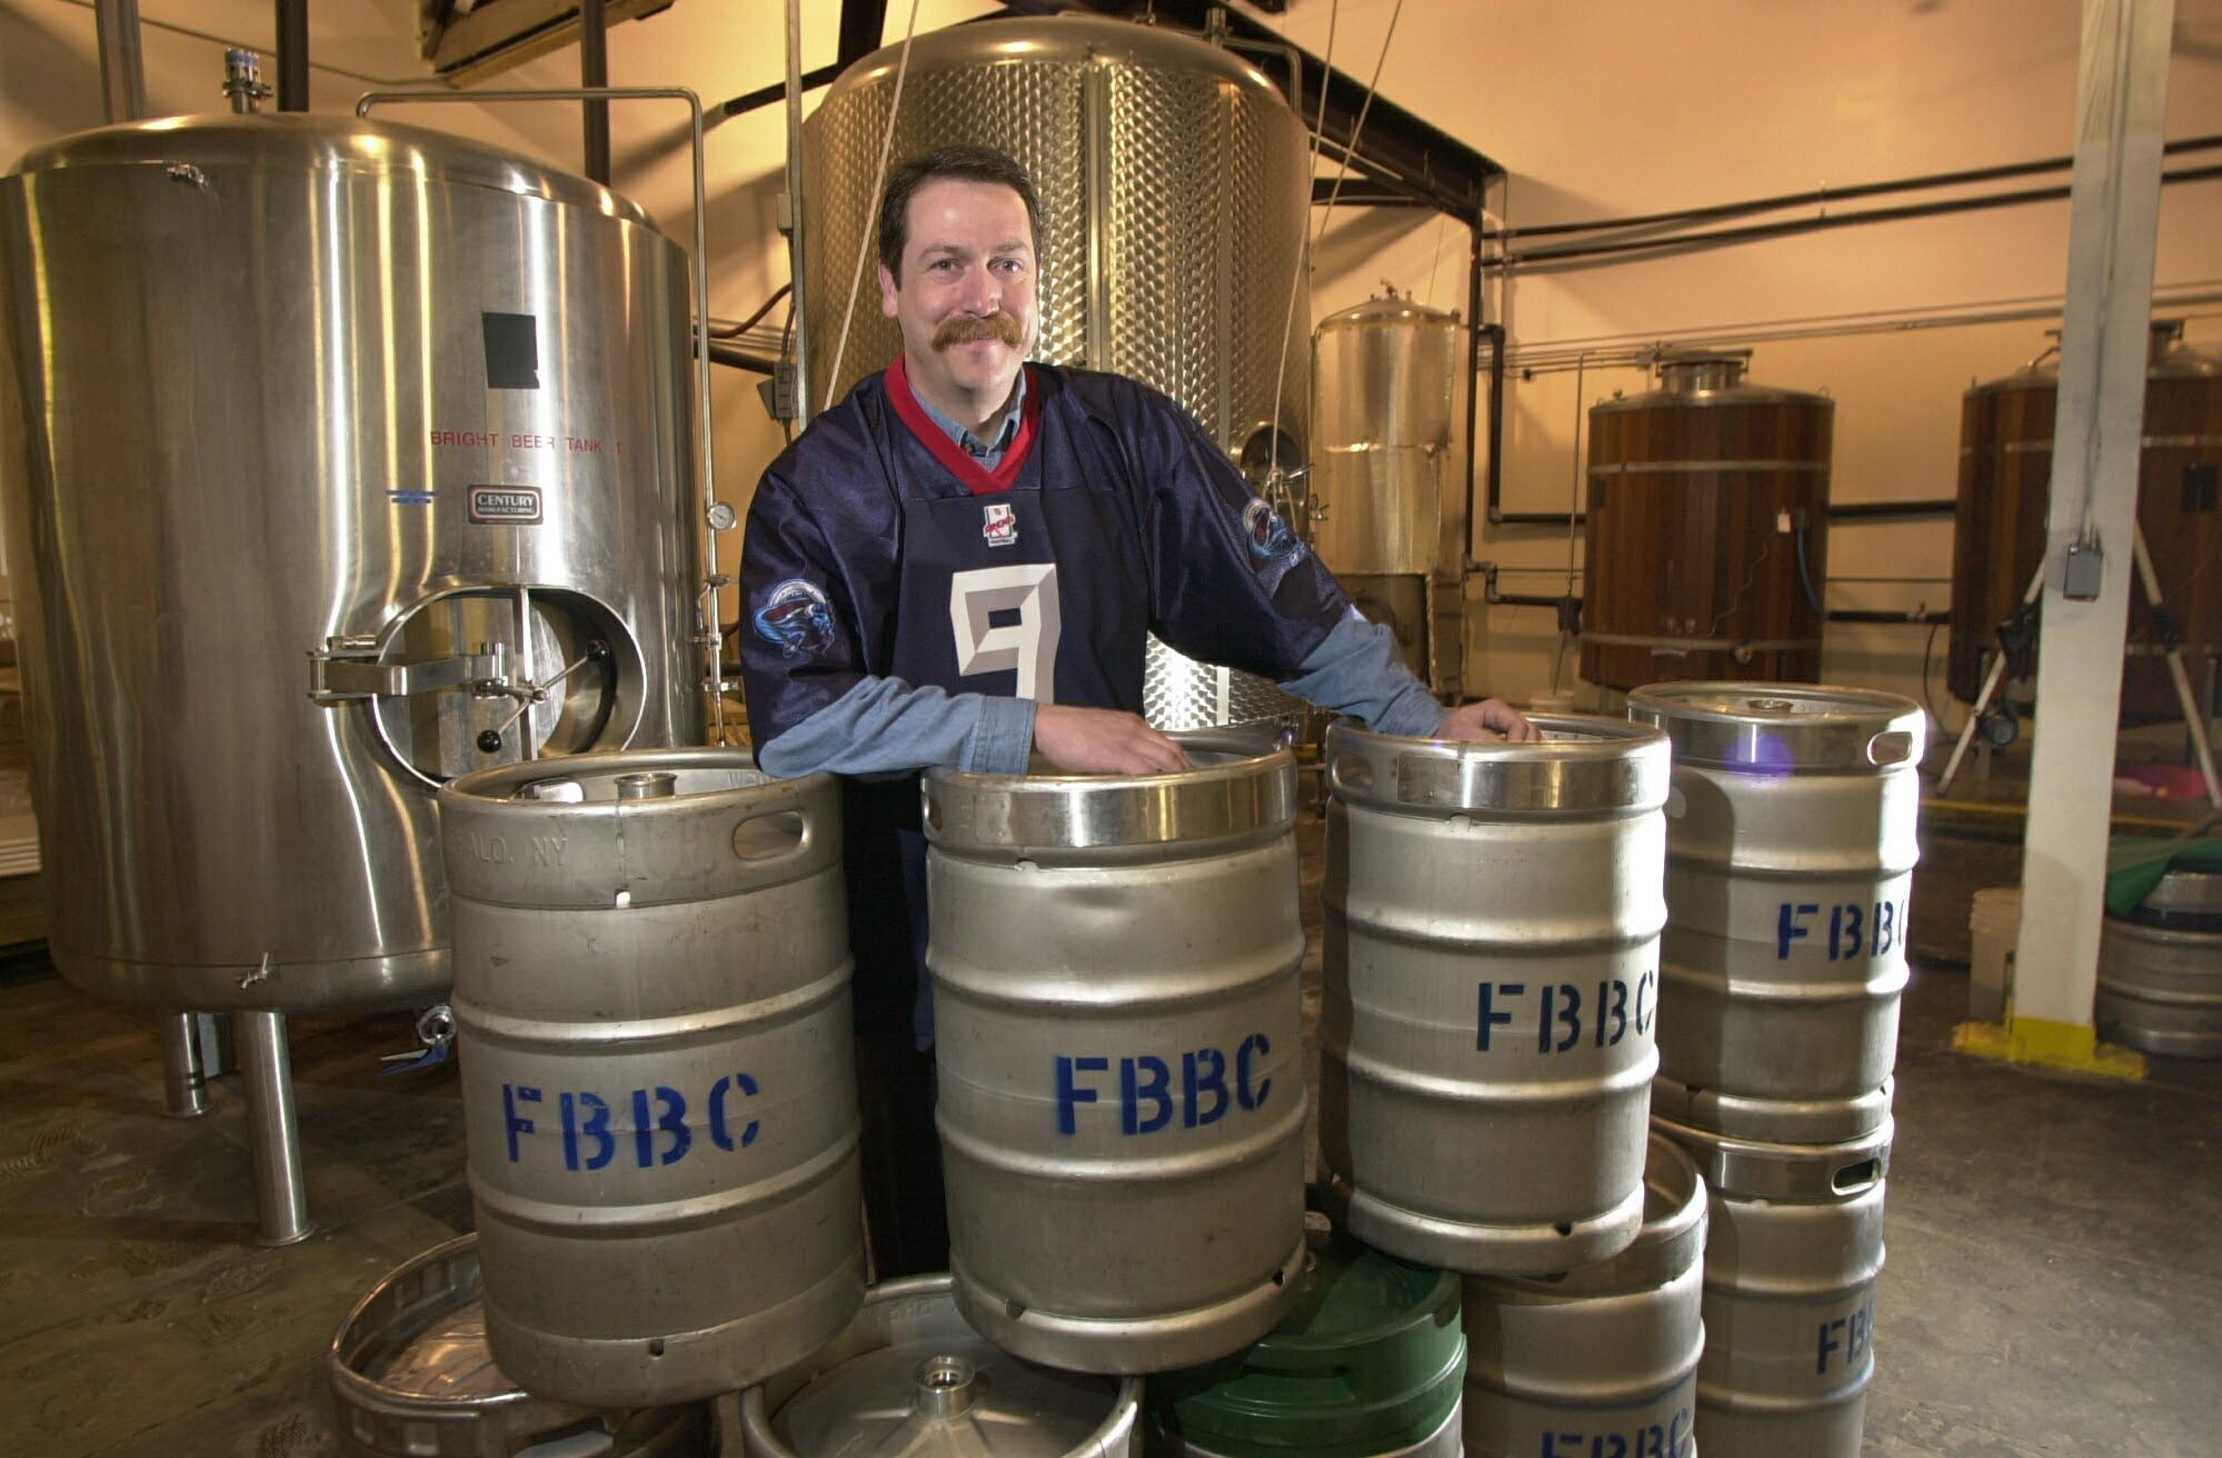 Tim Herzog, one of the founders of the brewery, said he and his partners had a hard time getting the needed state and federal approvals for the brewery name. The problem is, once a brewery registers its name, that name can't be used by anyone else unless it's unregistered.